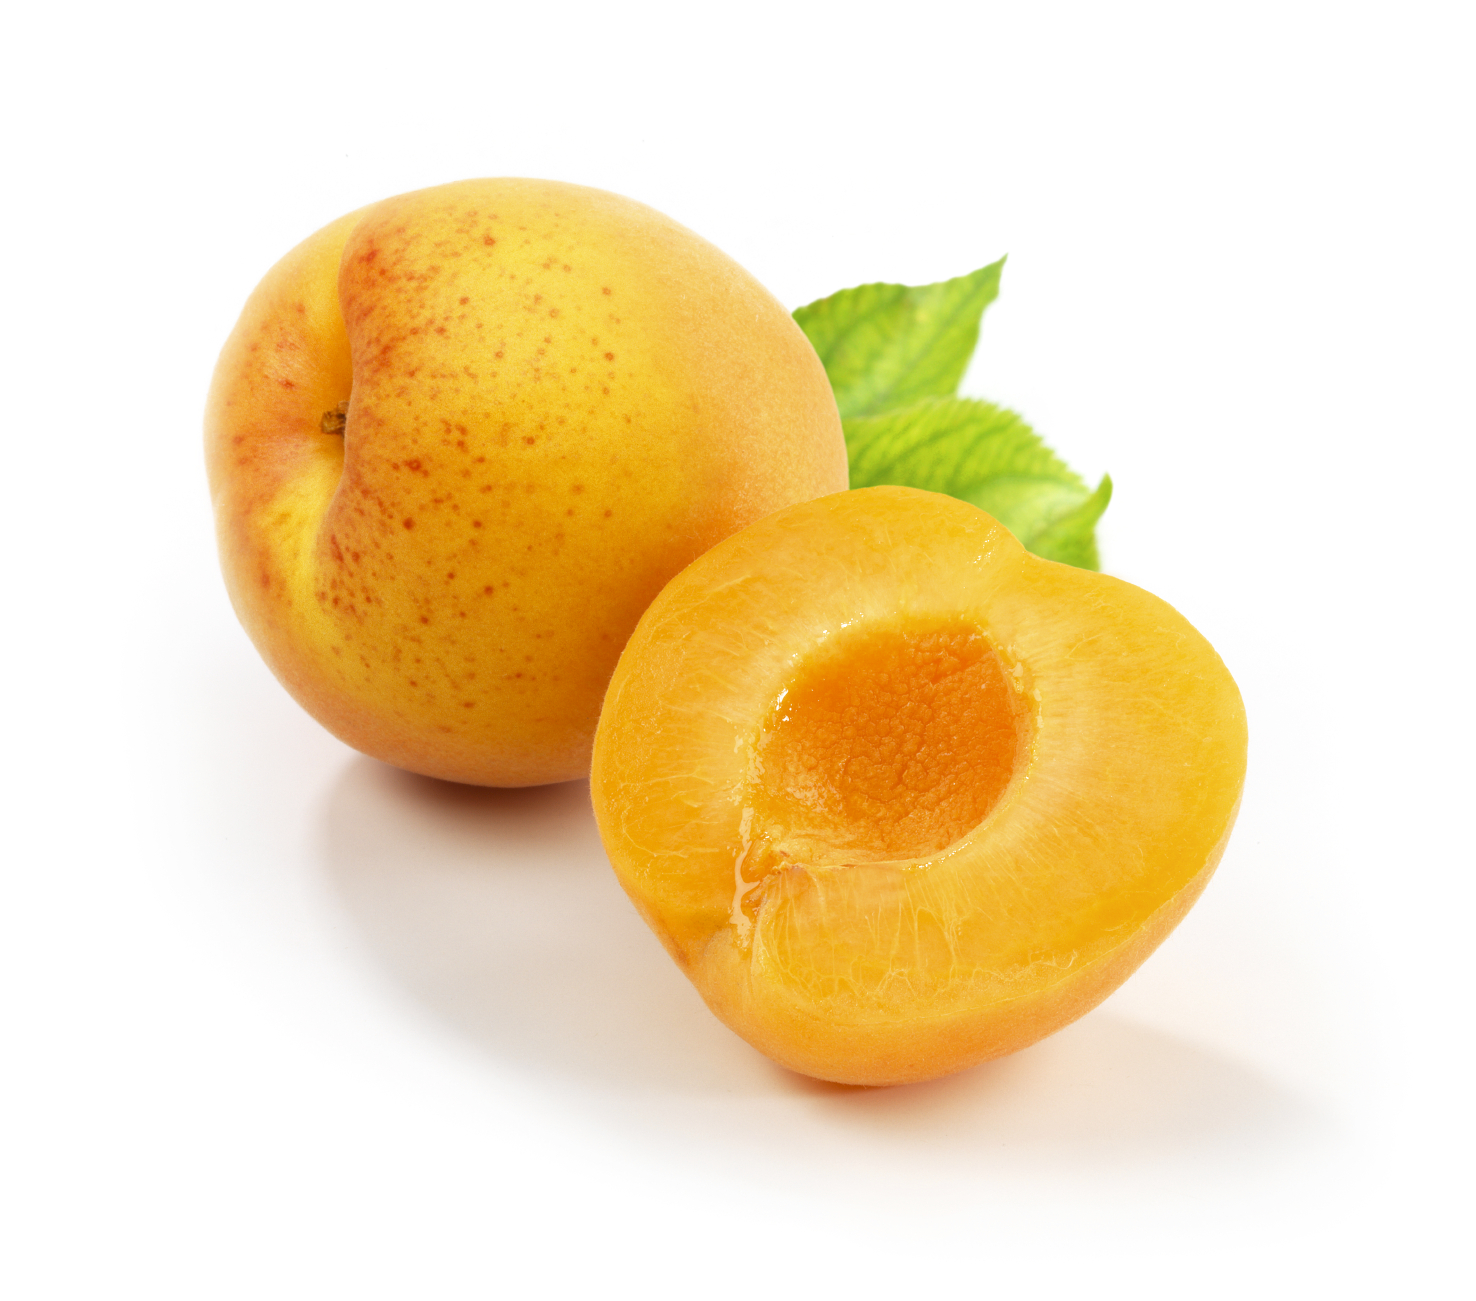 Apricot Halves - Bithell Farms